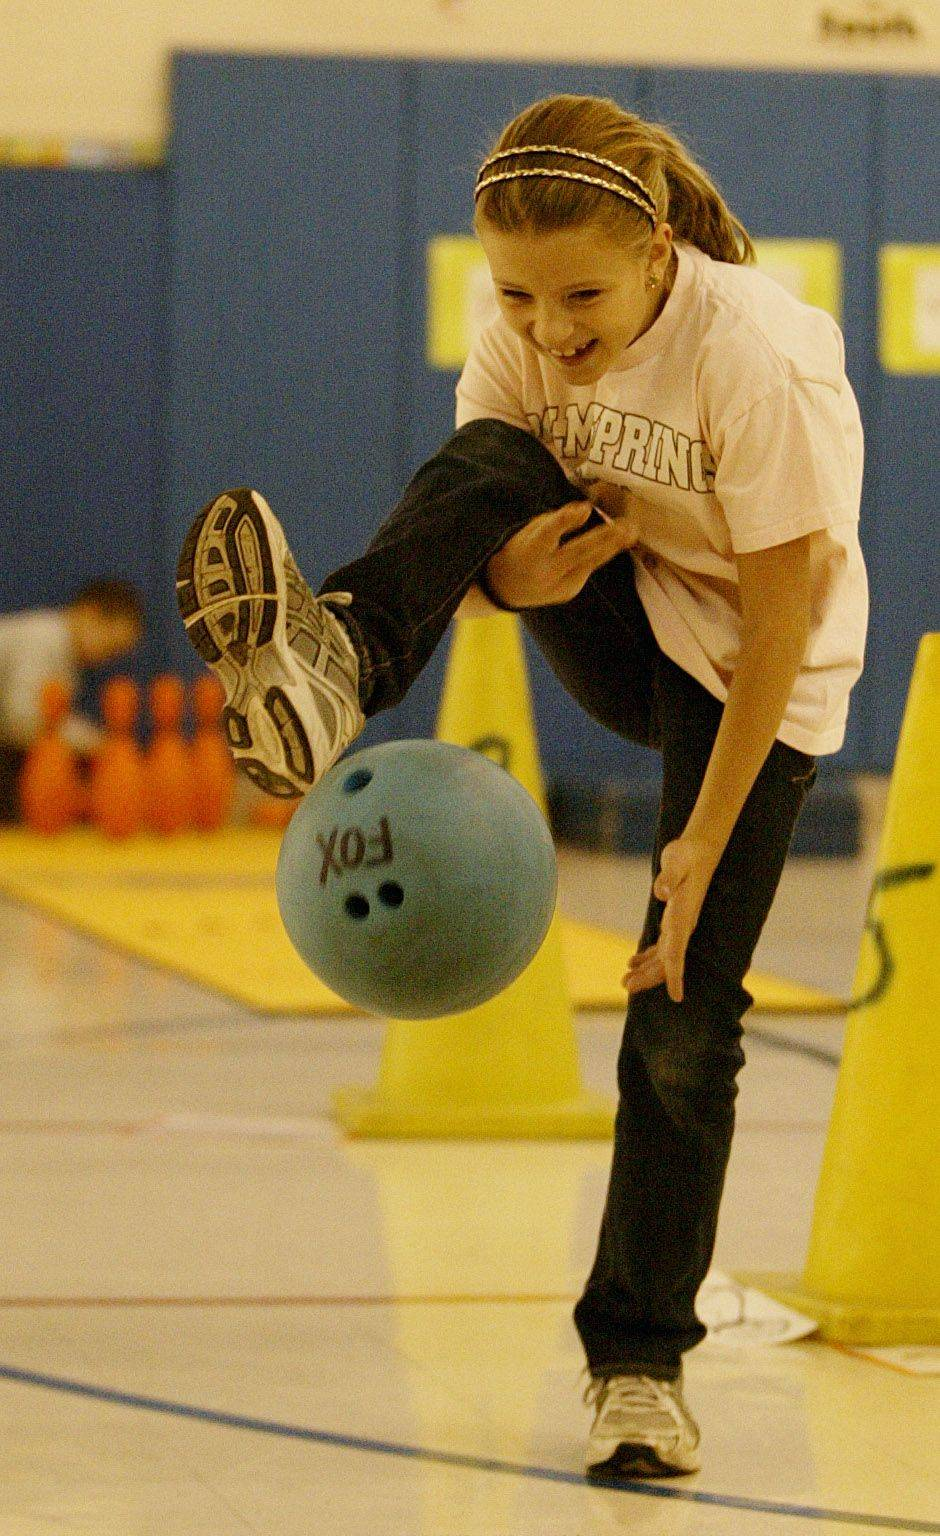 Margaret Carlisle, a third grader at Longfellow Elementary school in Wheaton bowls under one leg during physical education class in Wheaton.